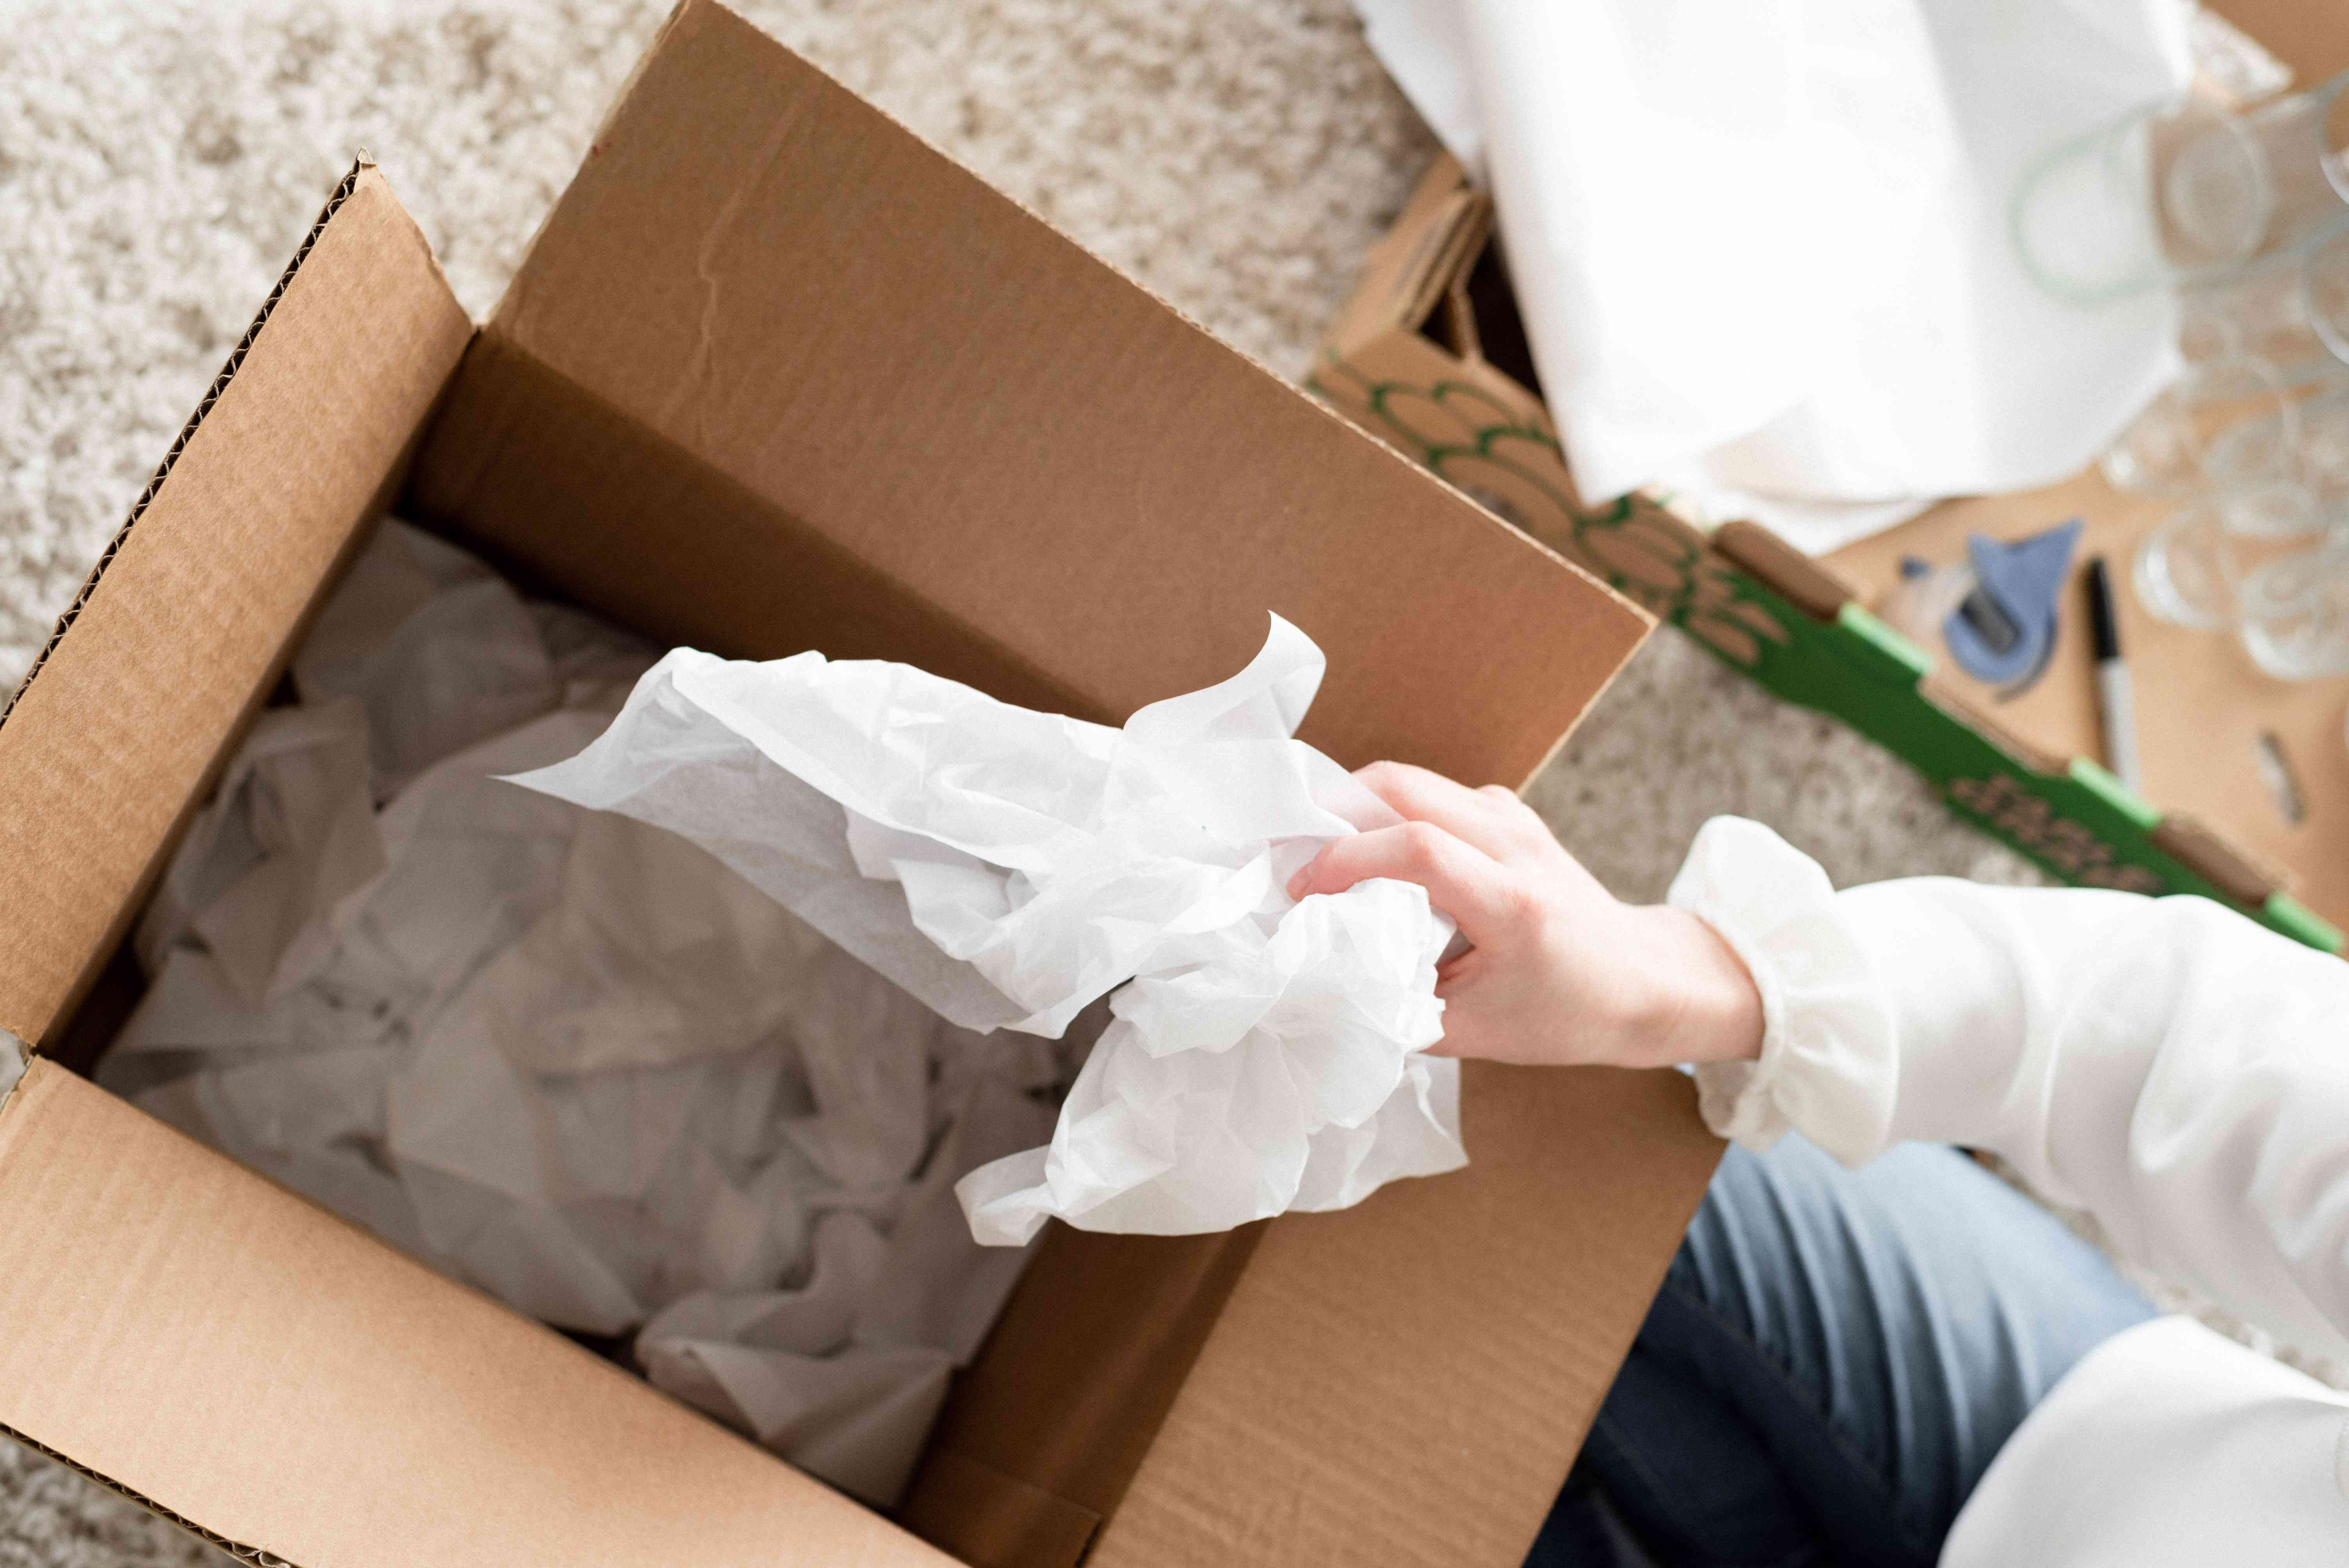 person crumpling packing paper